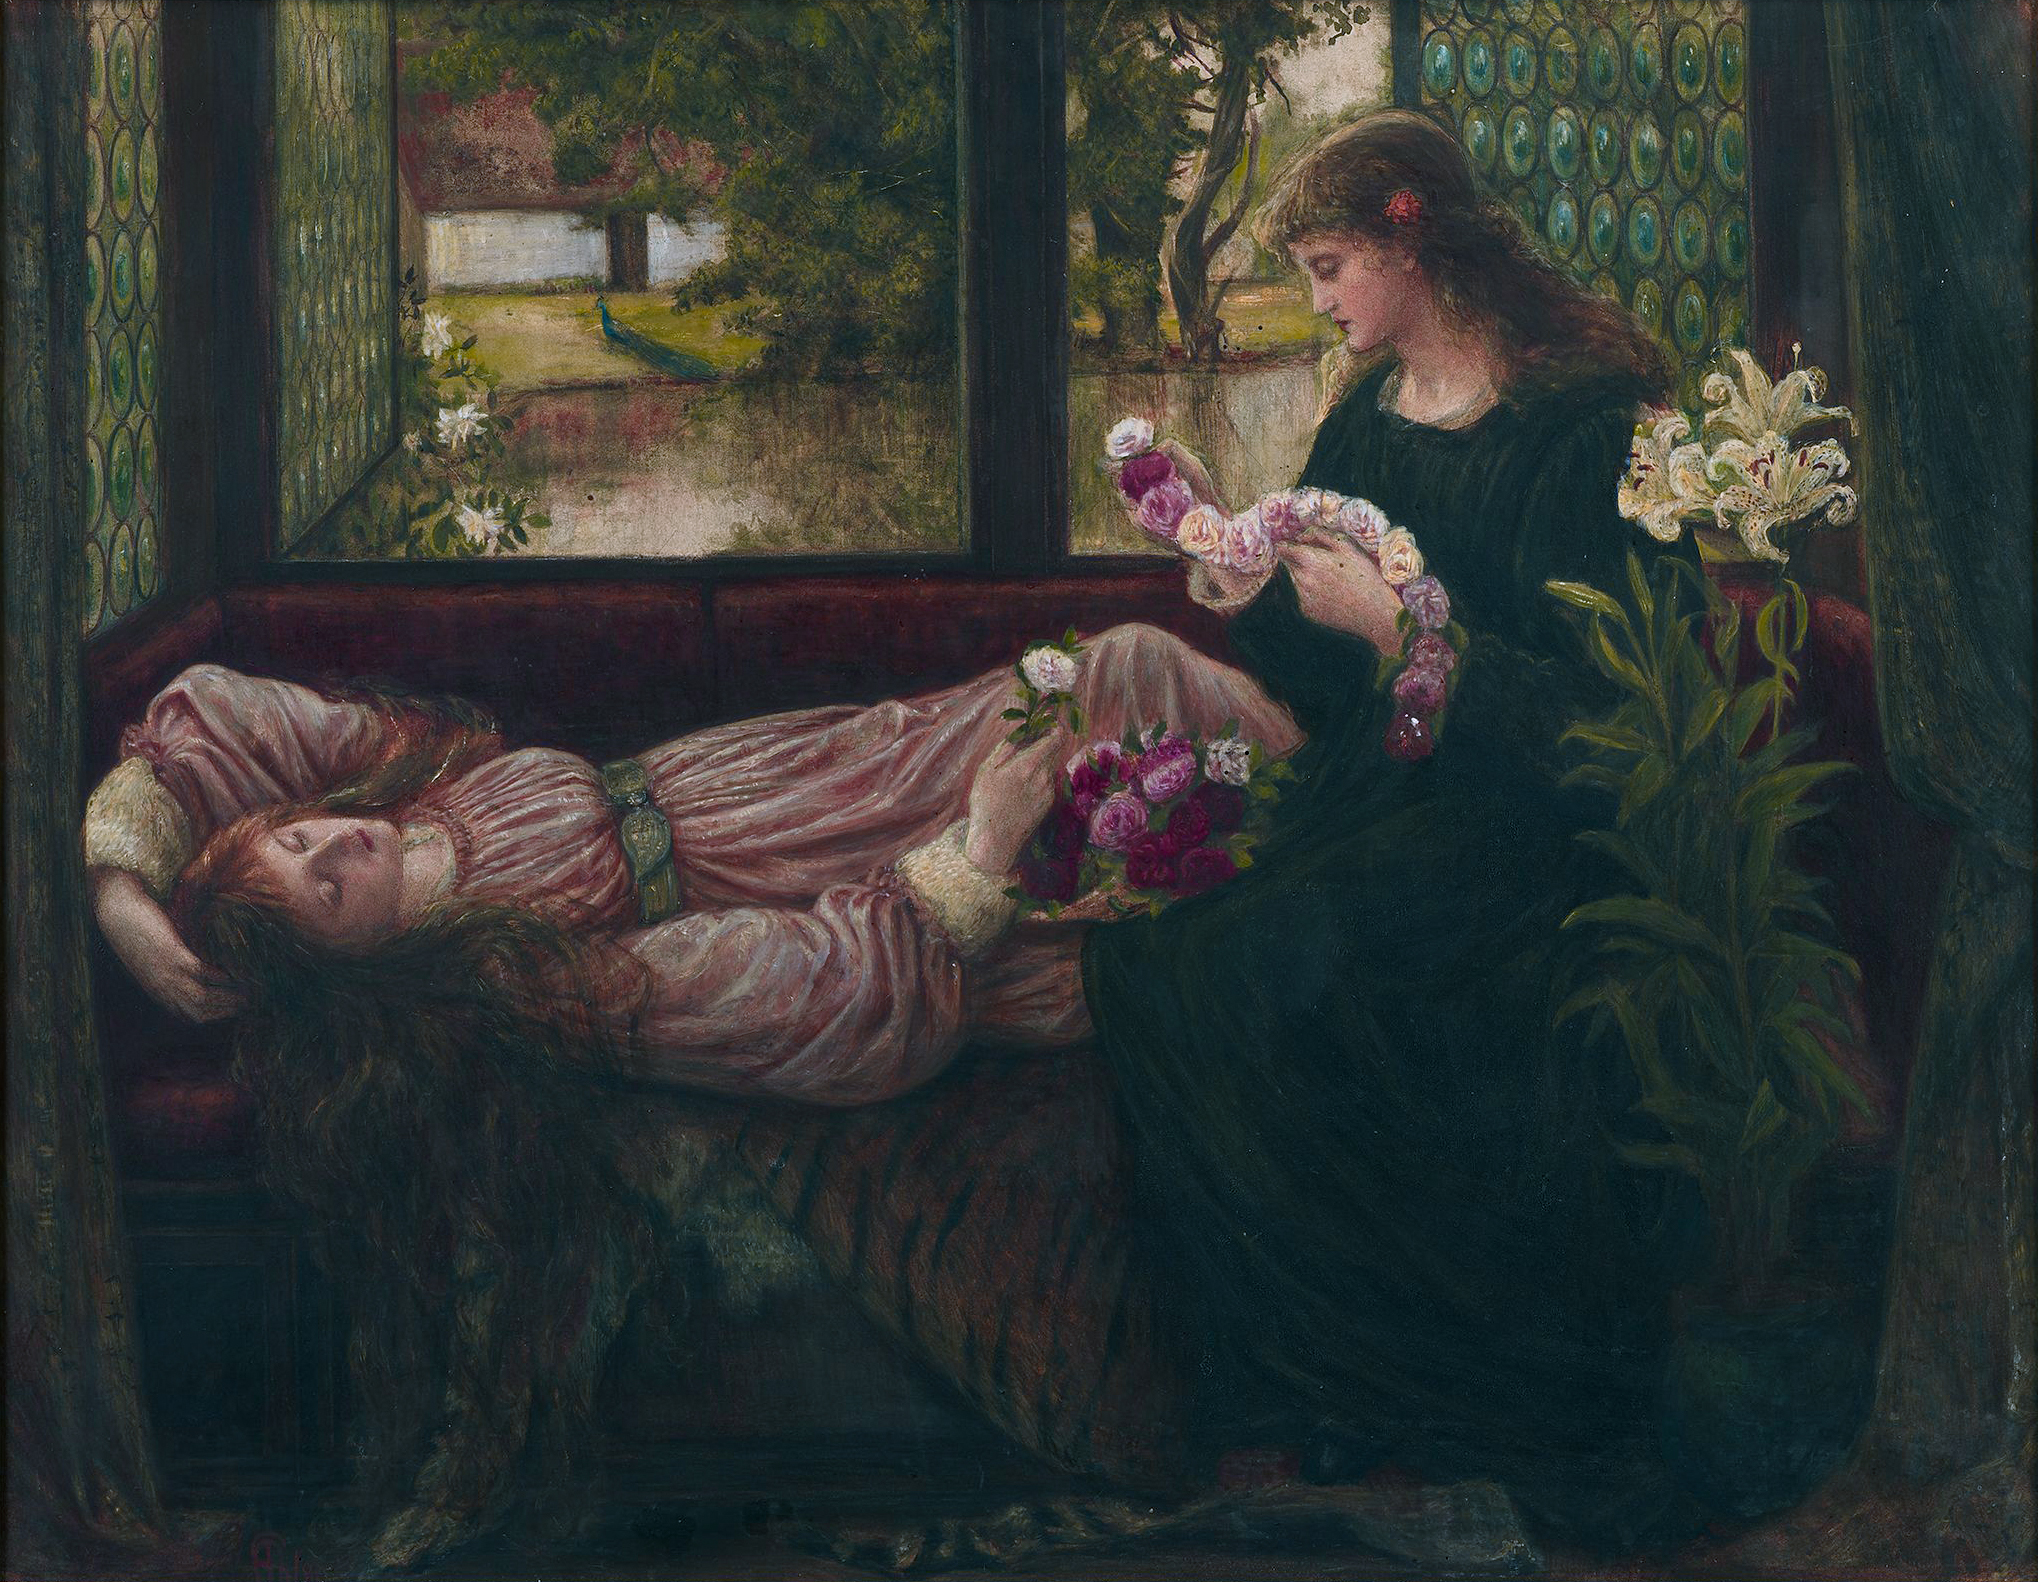 https://upload.wikimedia.org/wikipedia/commons/3/36/A_Wreath_of_Roses%2C_by_Marie_Spartali_Stillman.jpg